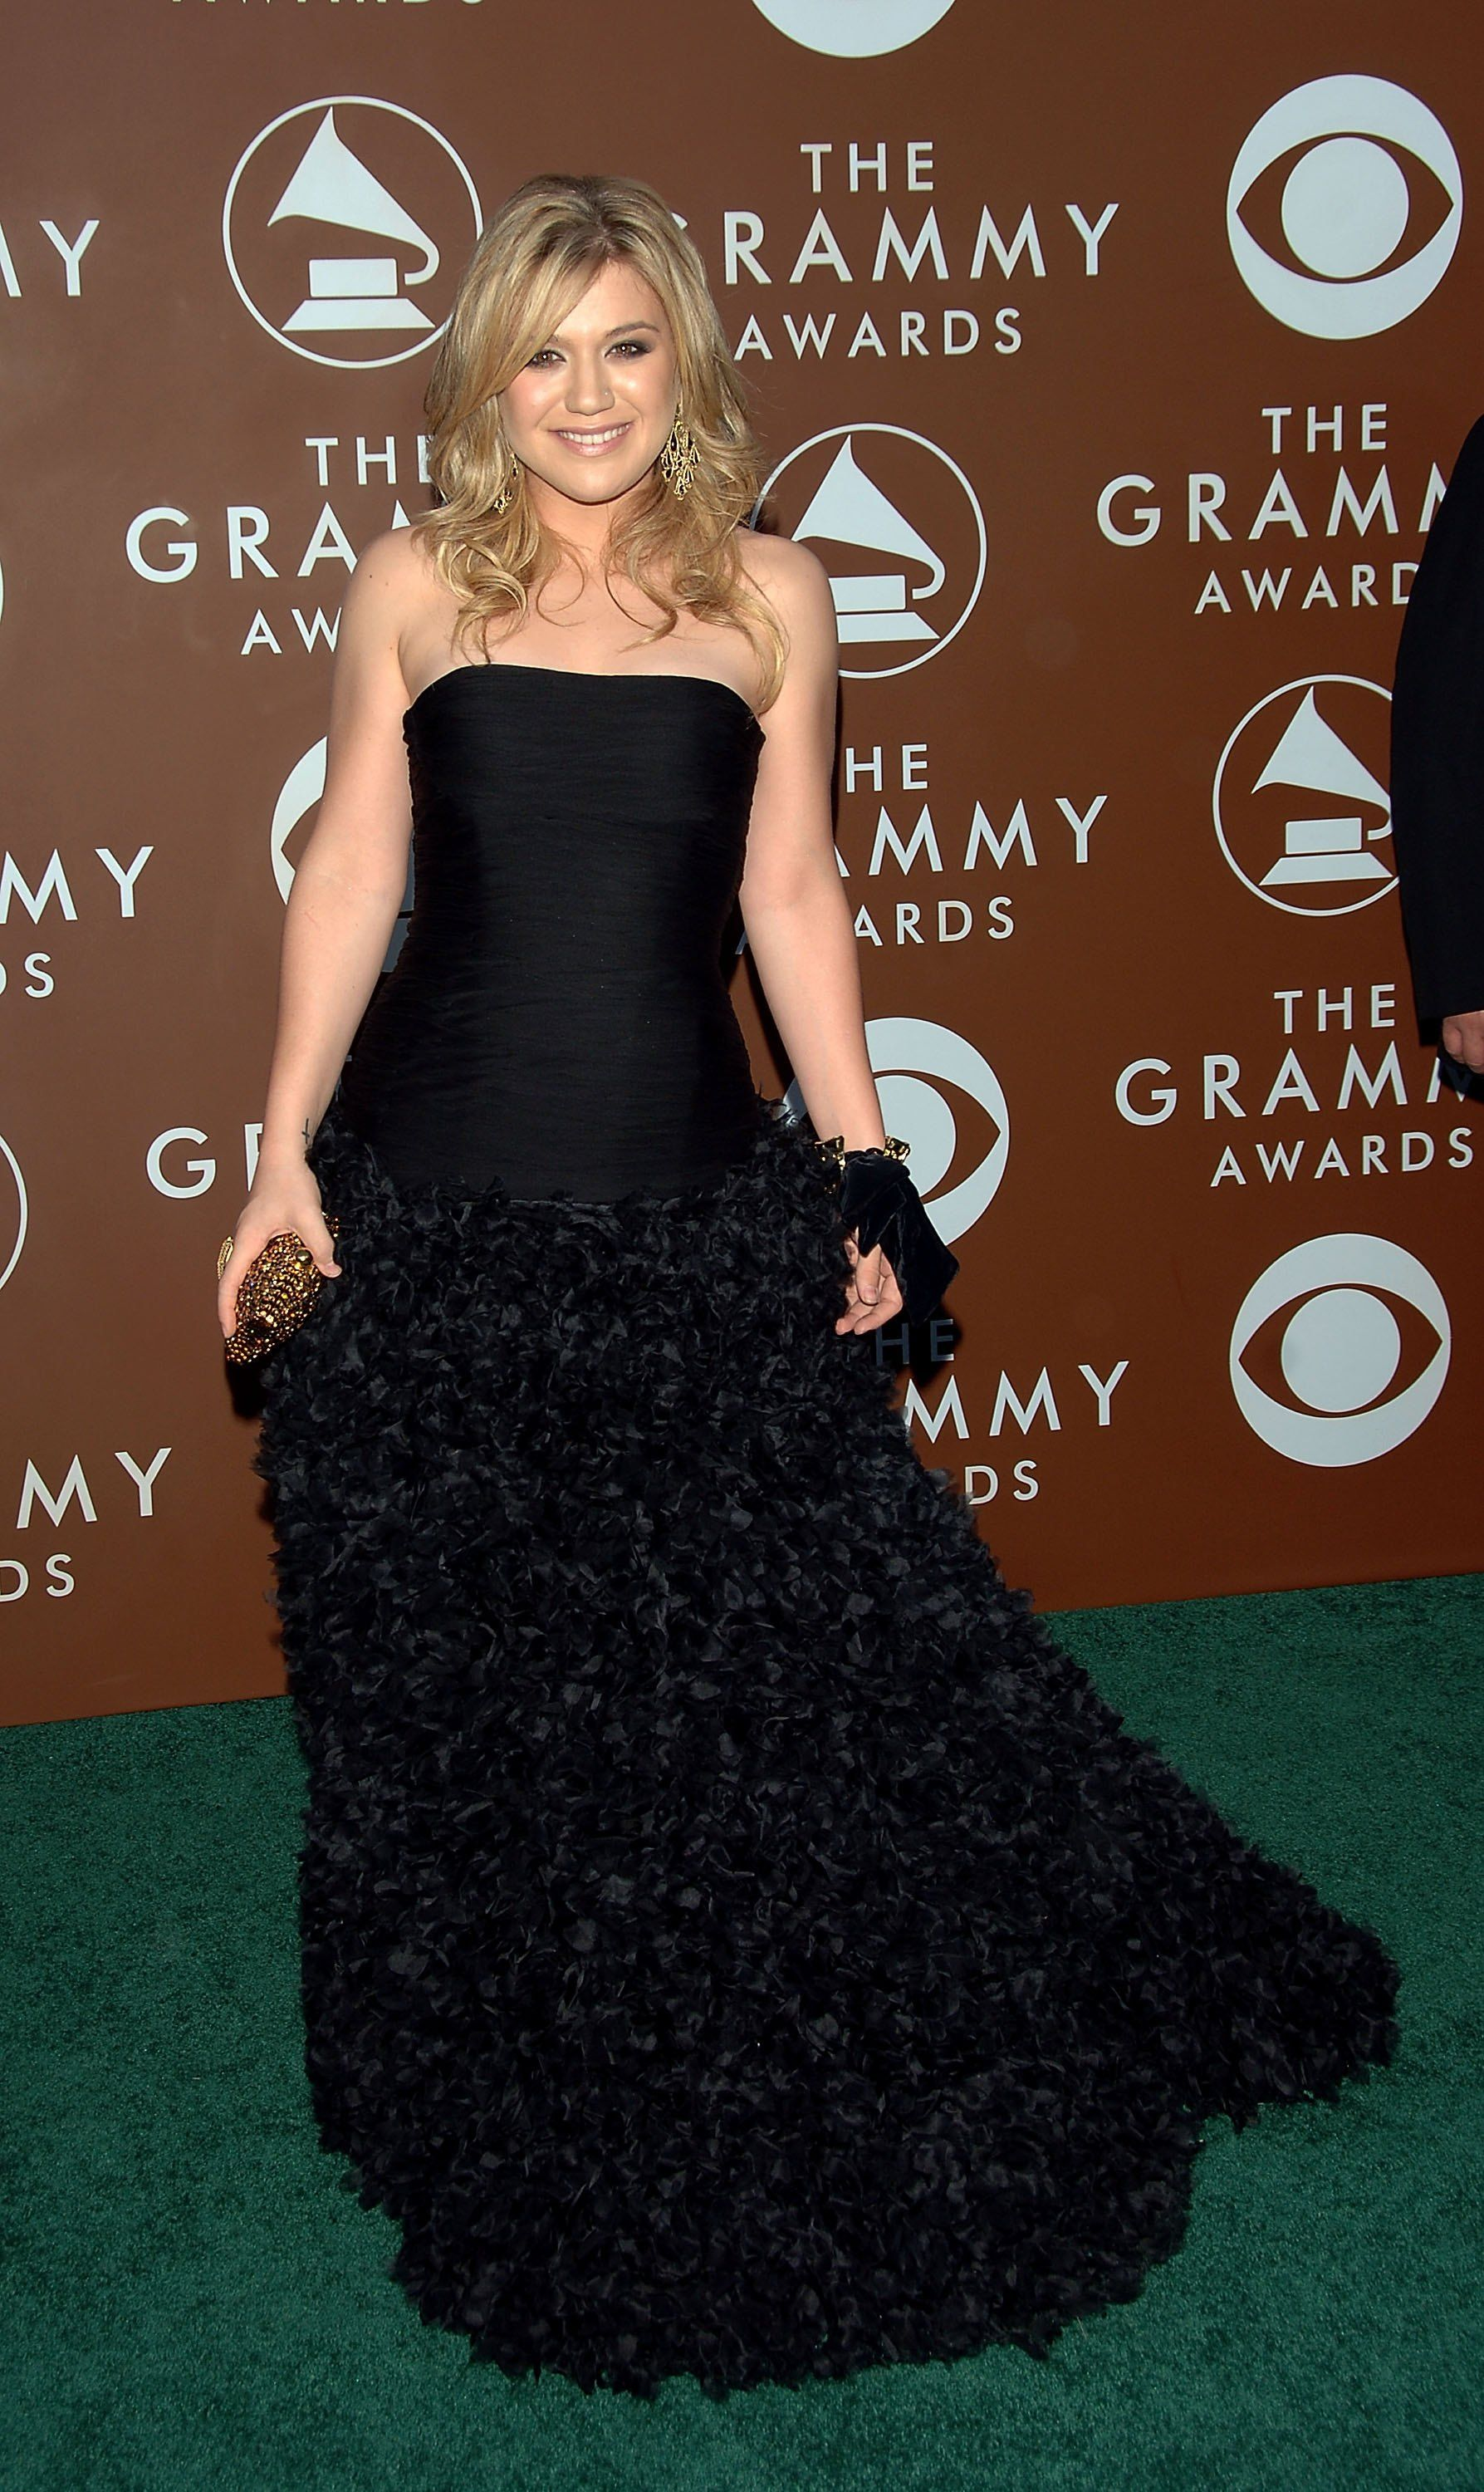 Kelly Clarkson at the 48th Annual Grammy Awards on February 8, 2006, in Los Angeles, California | Photo: Stephen Shugerman/Getty Images